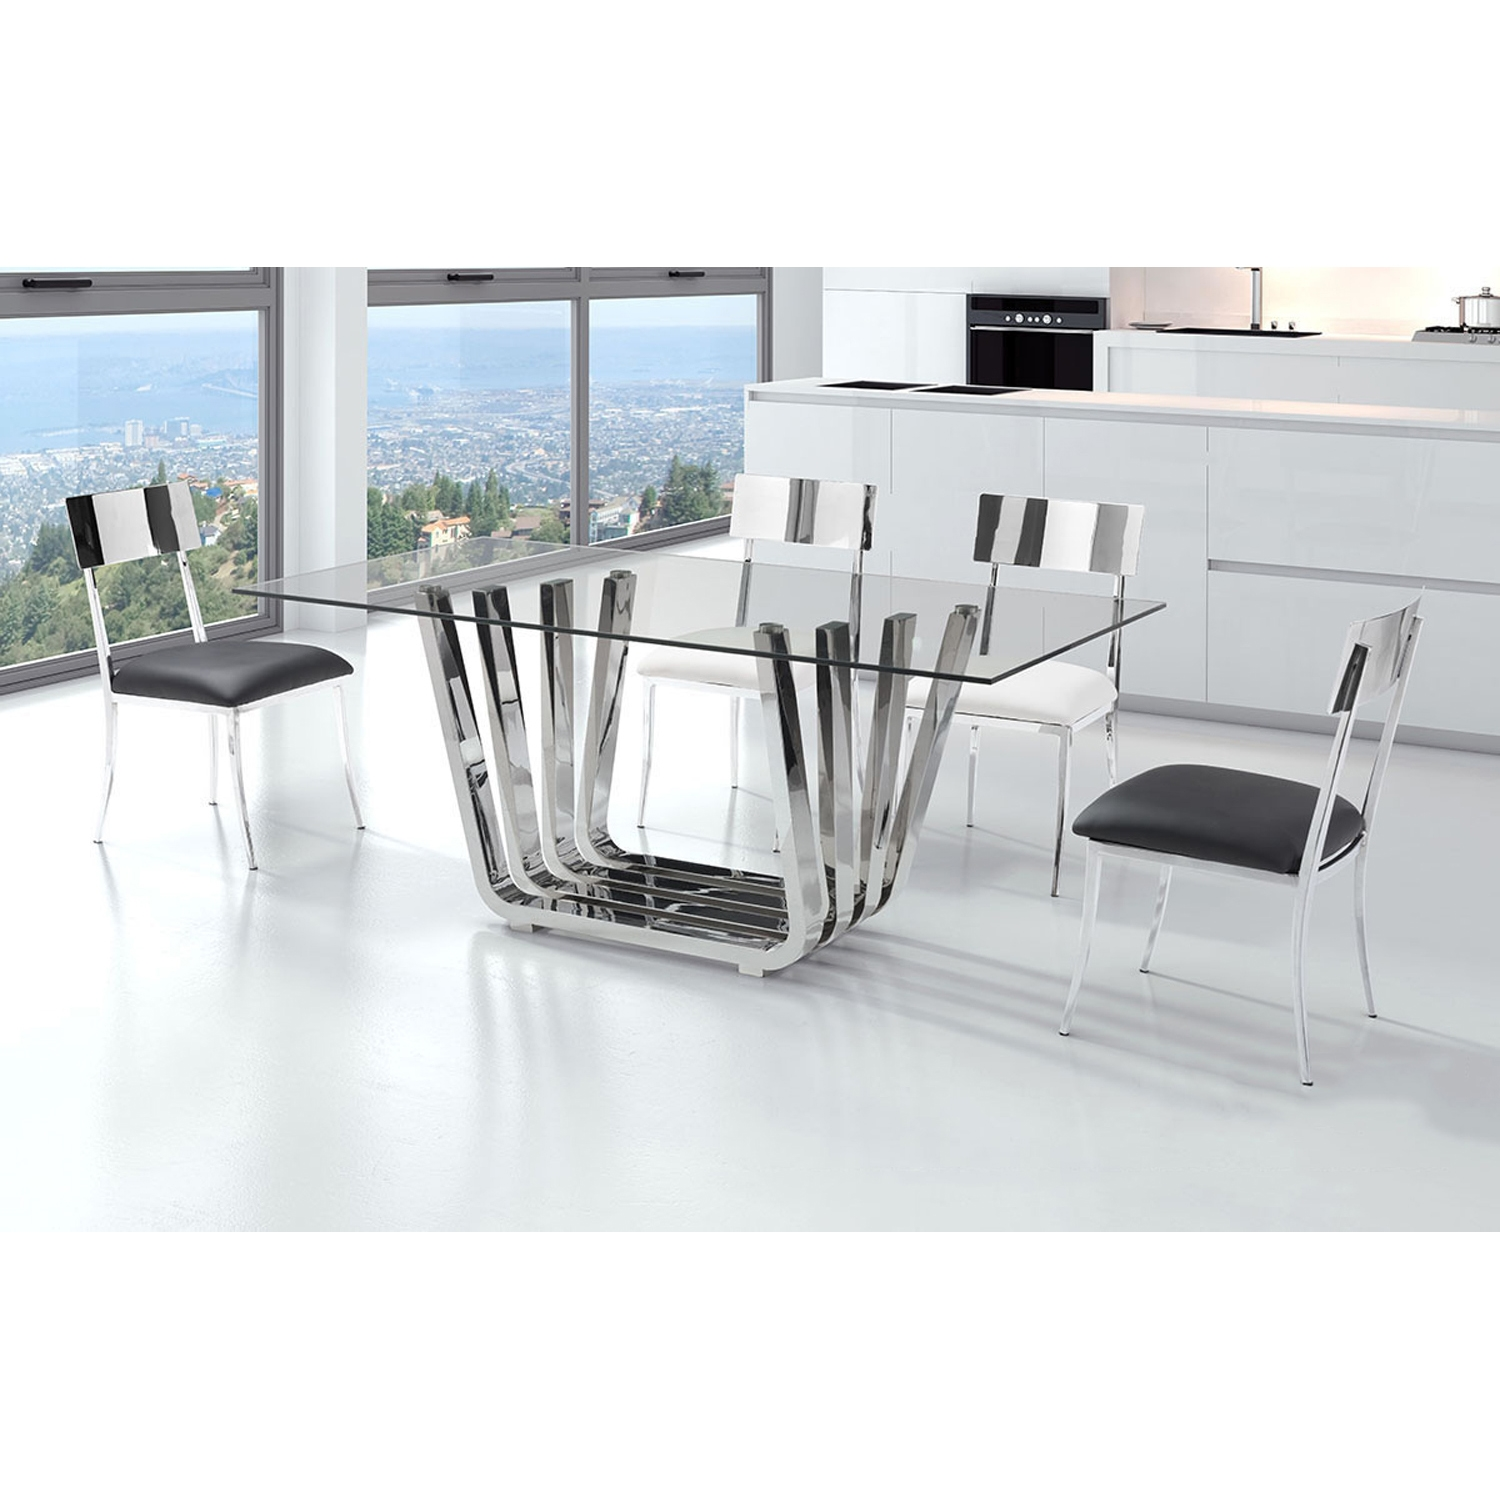 Fan Dining Table - Chrome - ZM-100325